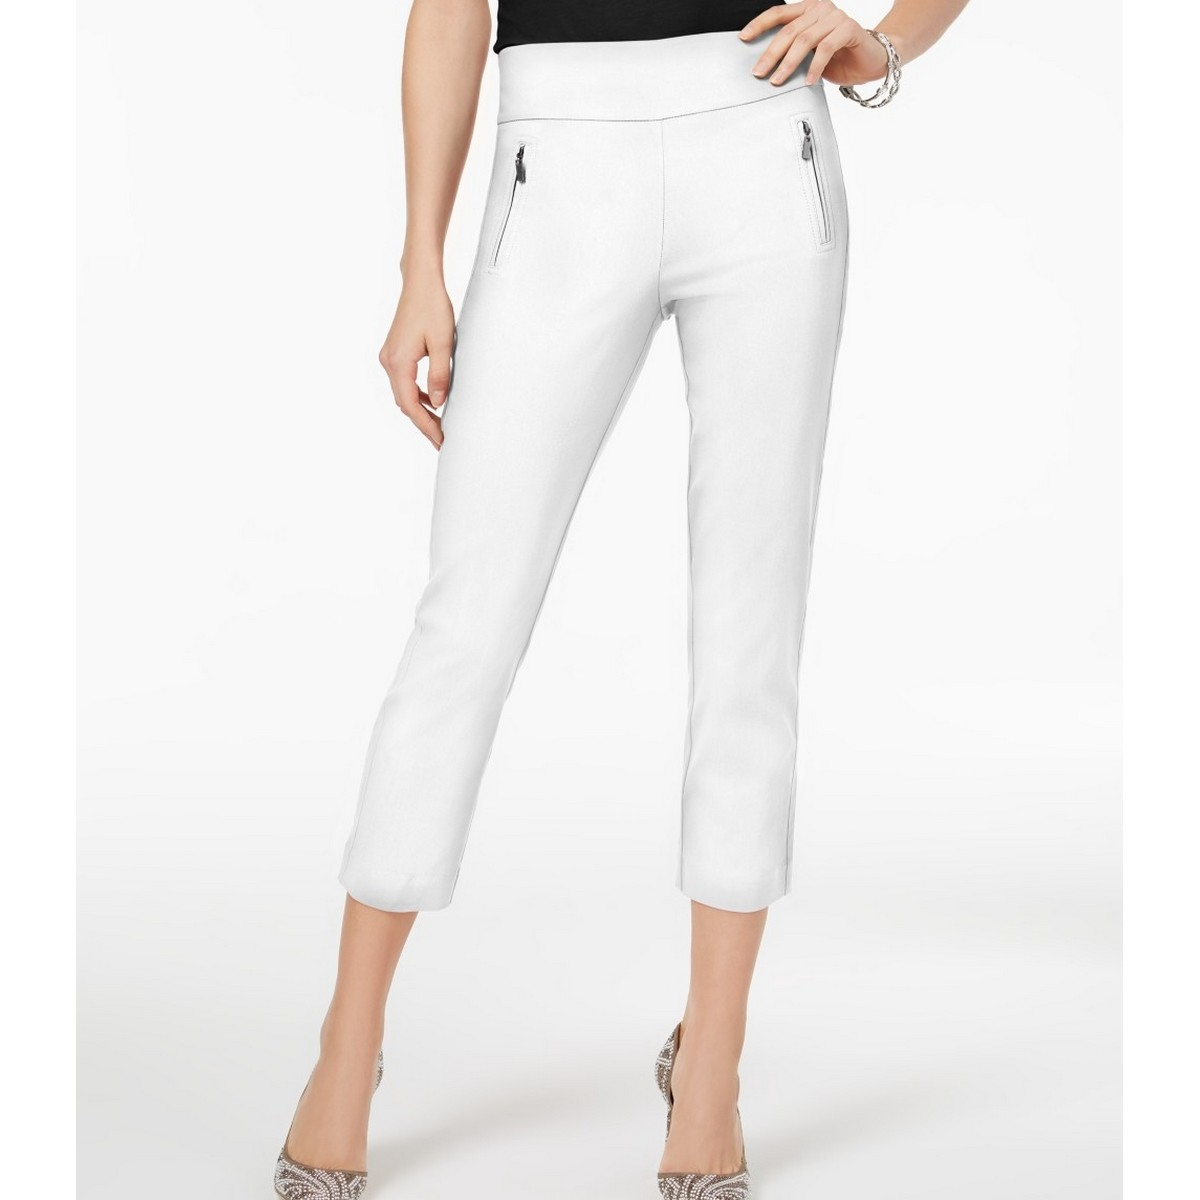 INC NEW Women's White Curvy Fit Pull On Zipper Pockets Cropp